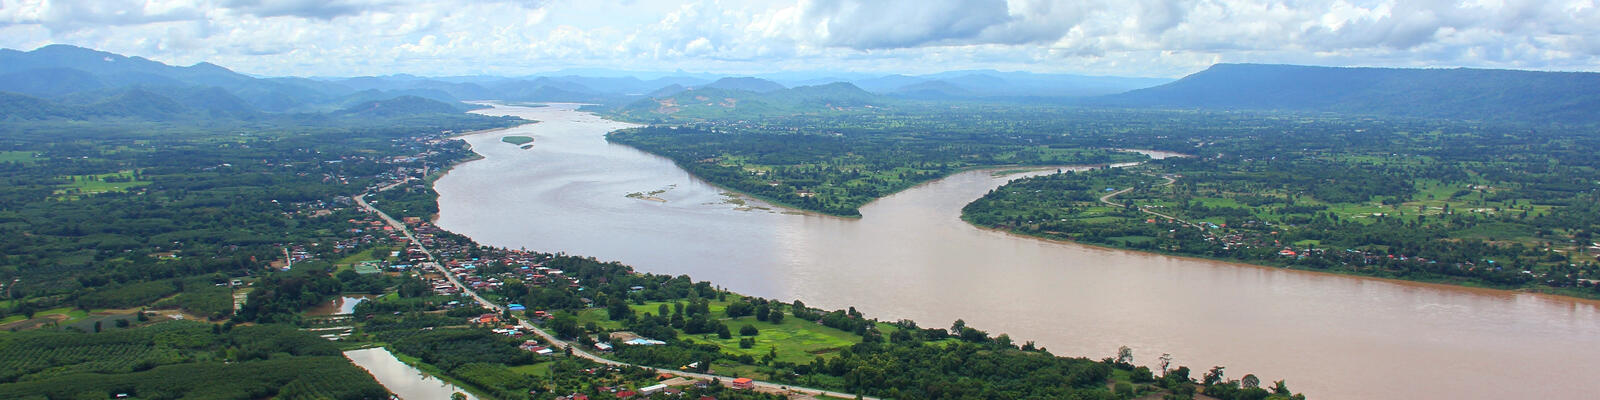 Mekong River (Photo: Oumssd/Shutterstock)